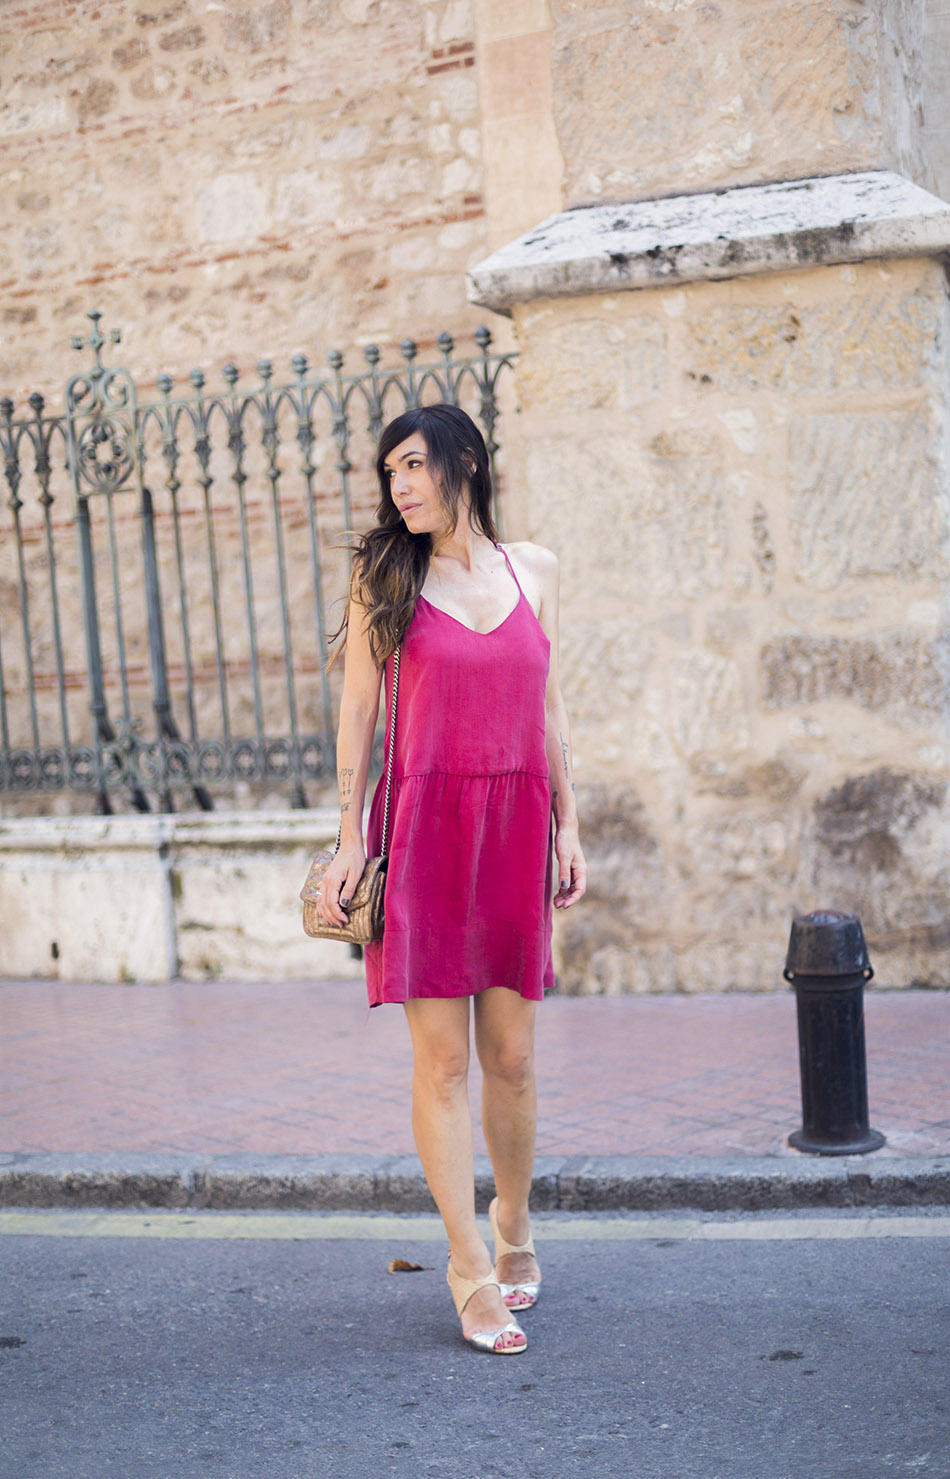 street-style-american-vintage-red-dress-zara-shoes-02